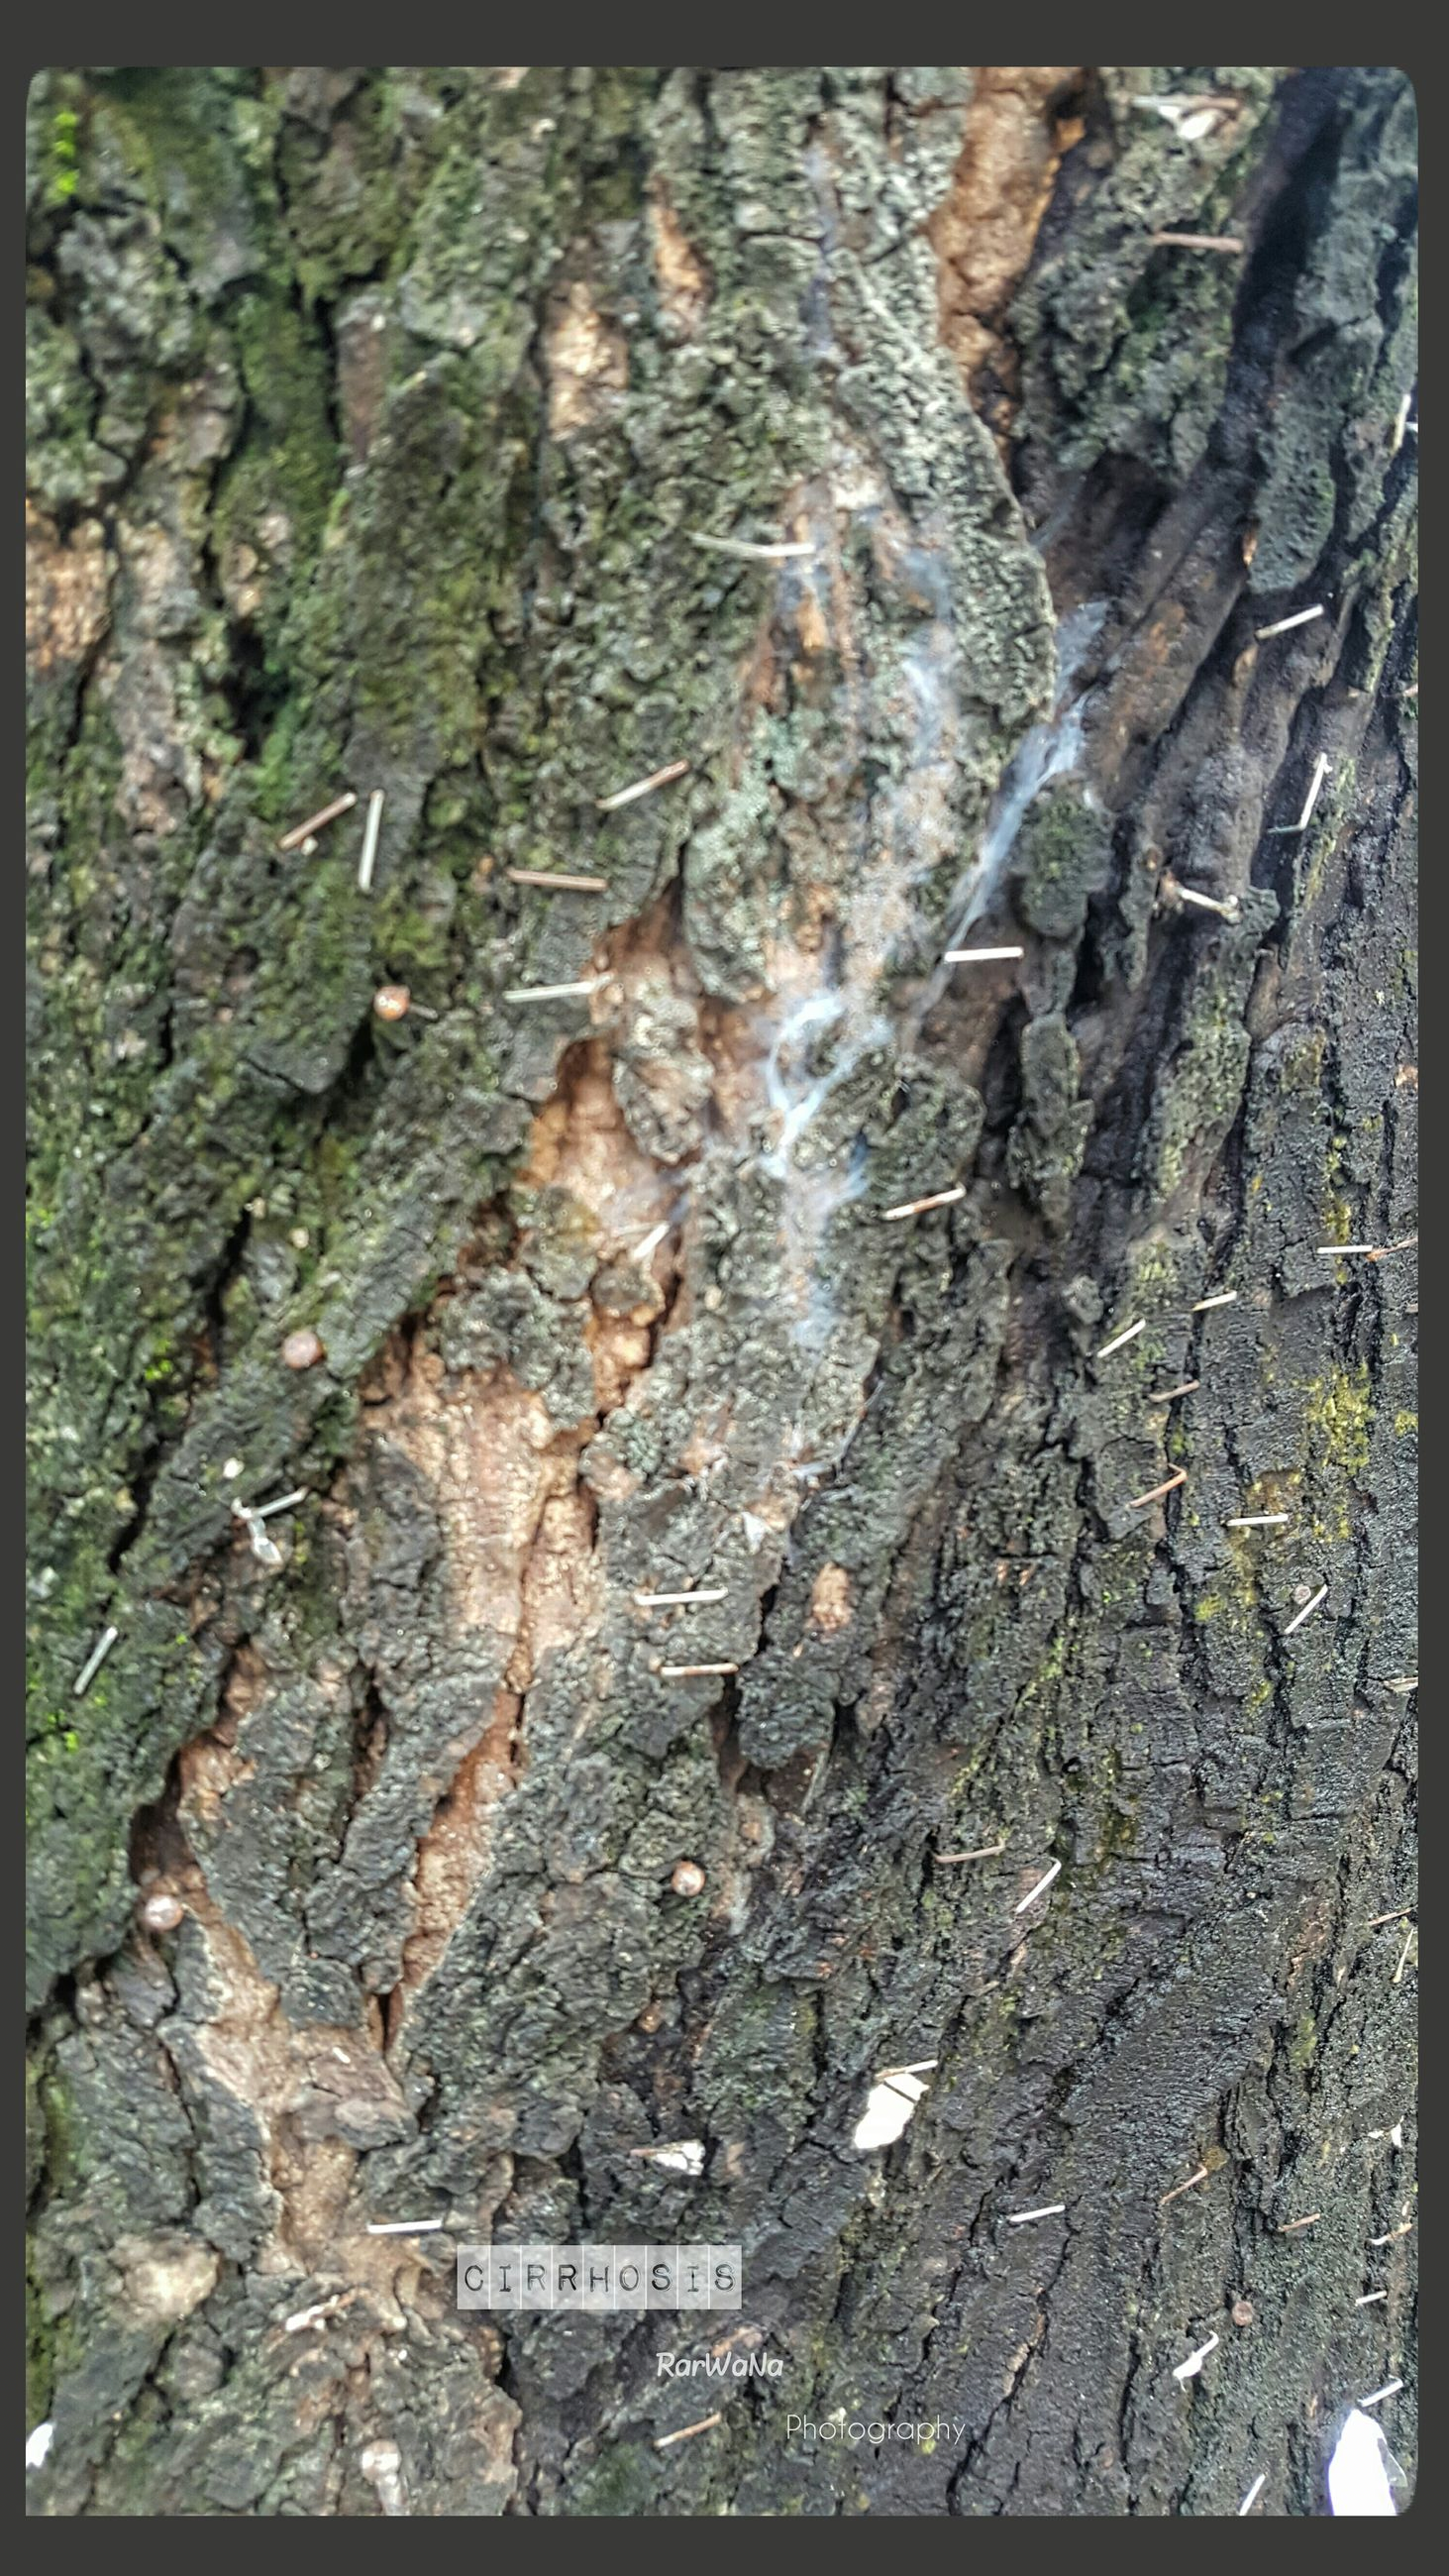 backgrounds, full frame, textured, tree trunk, auto post production filter, transfer print, close-up, growth, bark, rough, moss, nature, natural condition, green color, outdoors, extreme close-up, weathered, no people, botany, beauty in nature